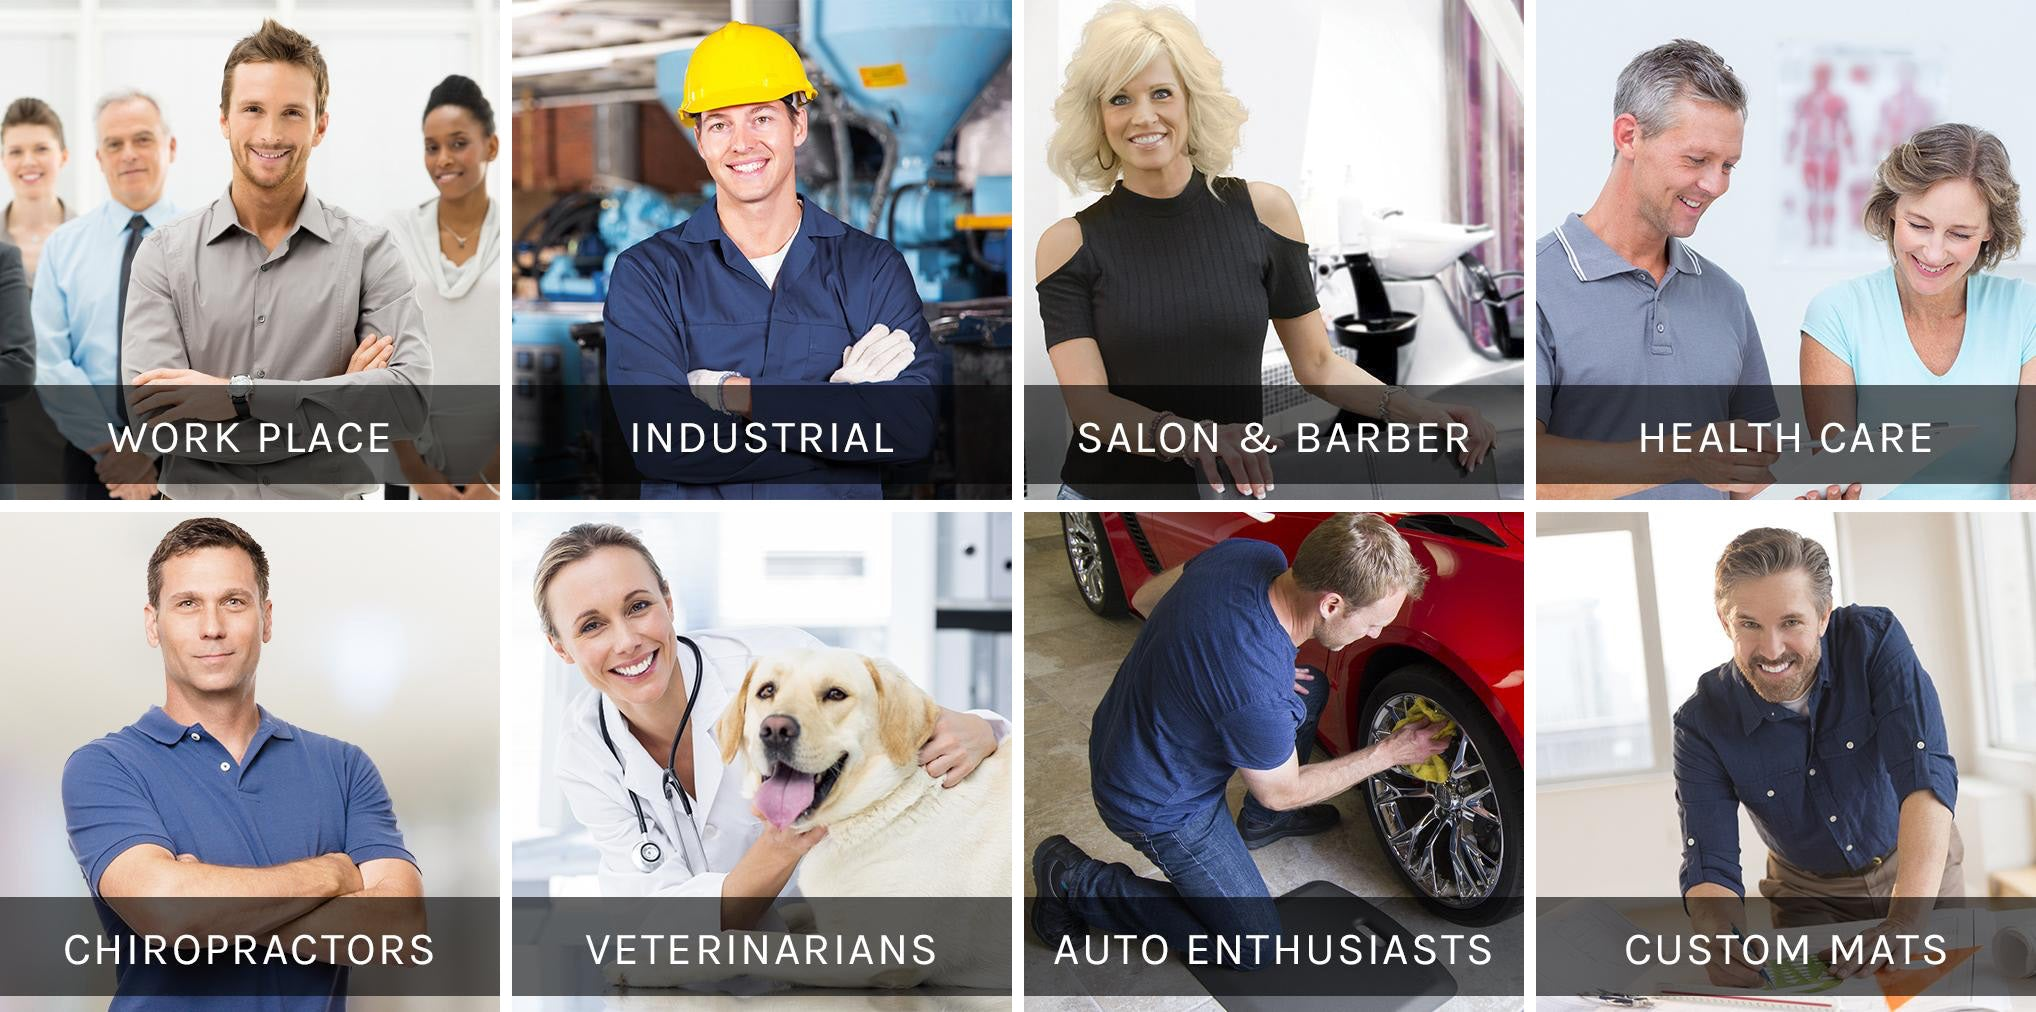 Work Place, Industrial, Salon & Barber, Health Care, Chiropractors, Veterinarians, Auto Enthusiasts, Custom Mats